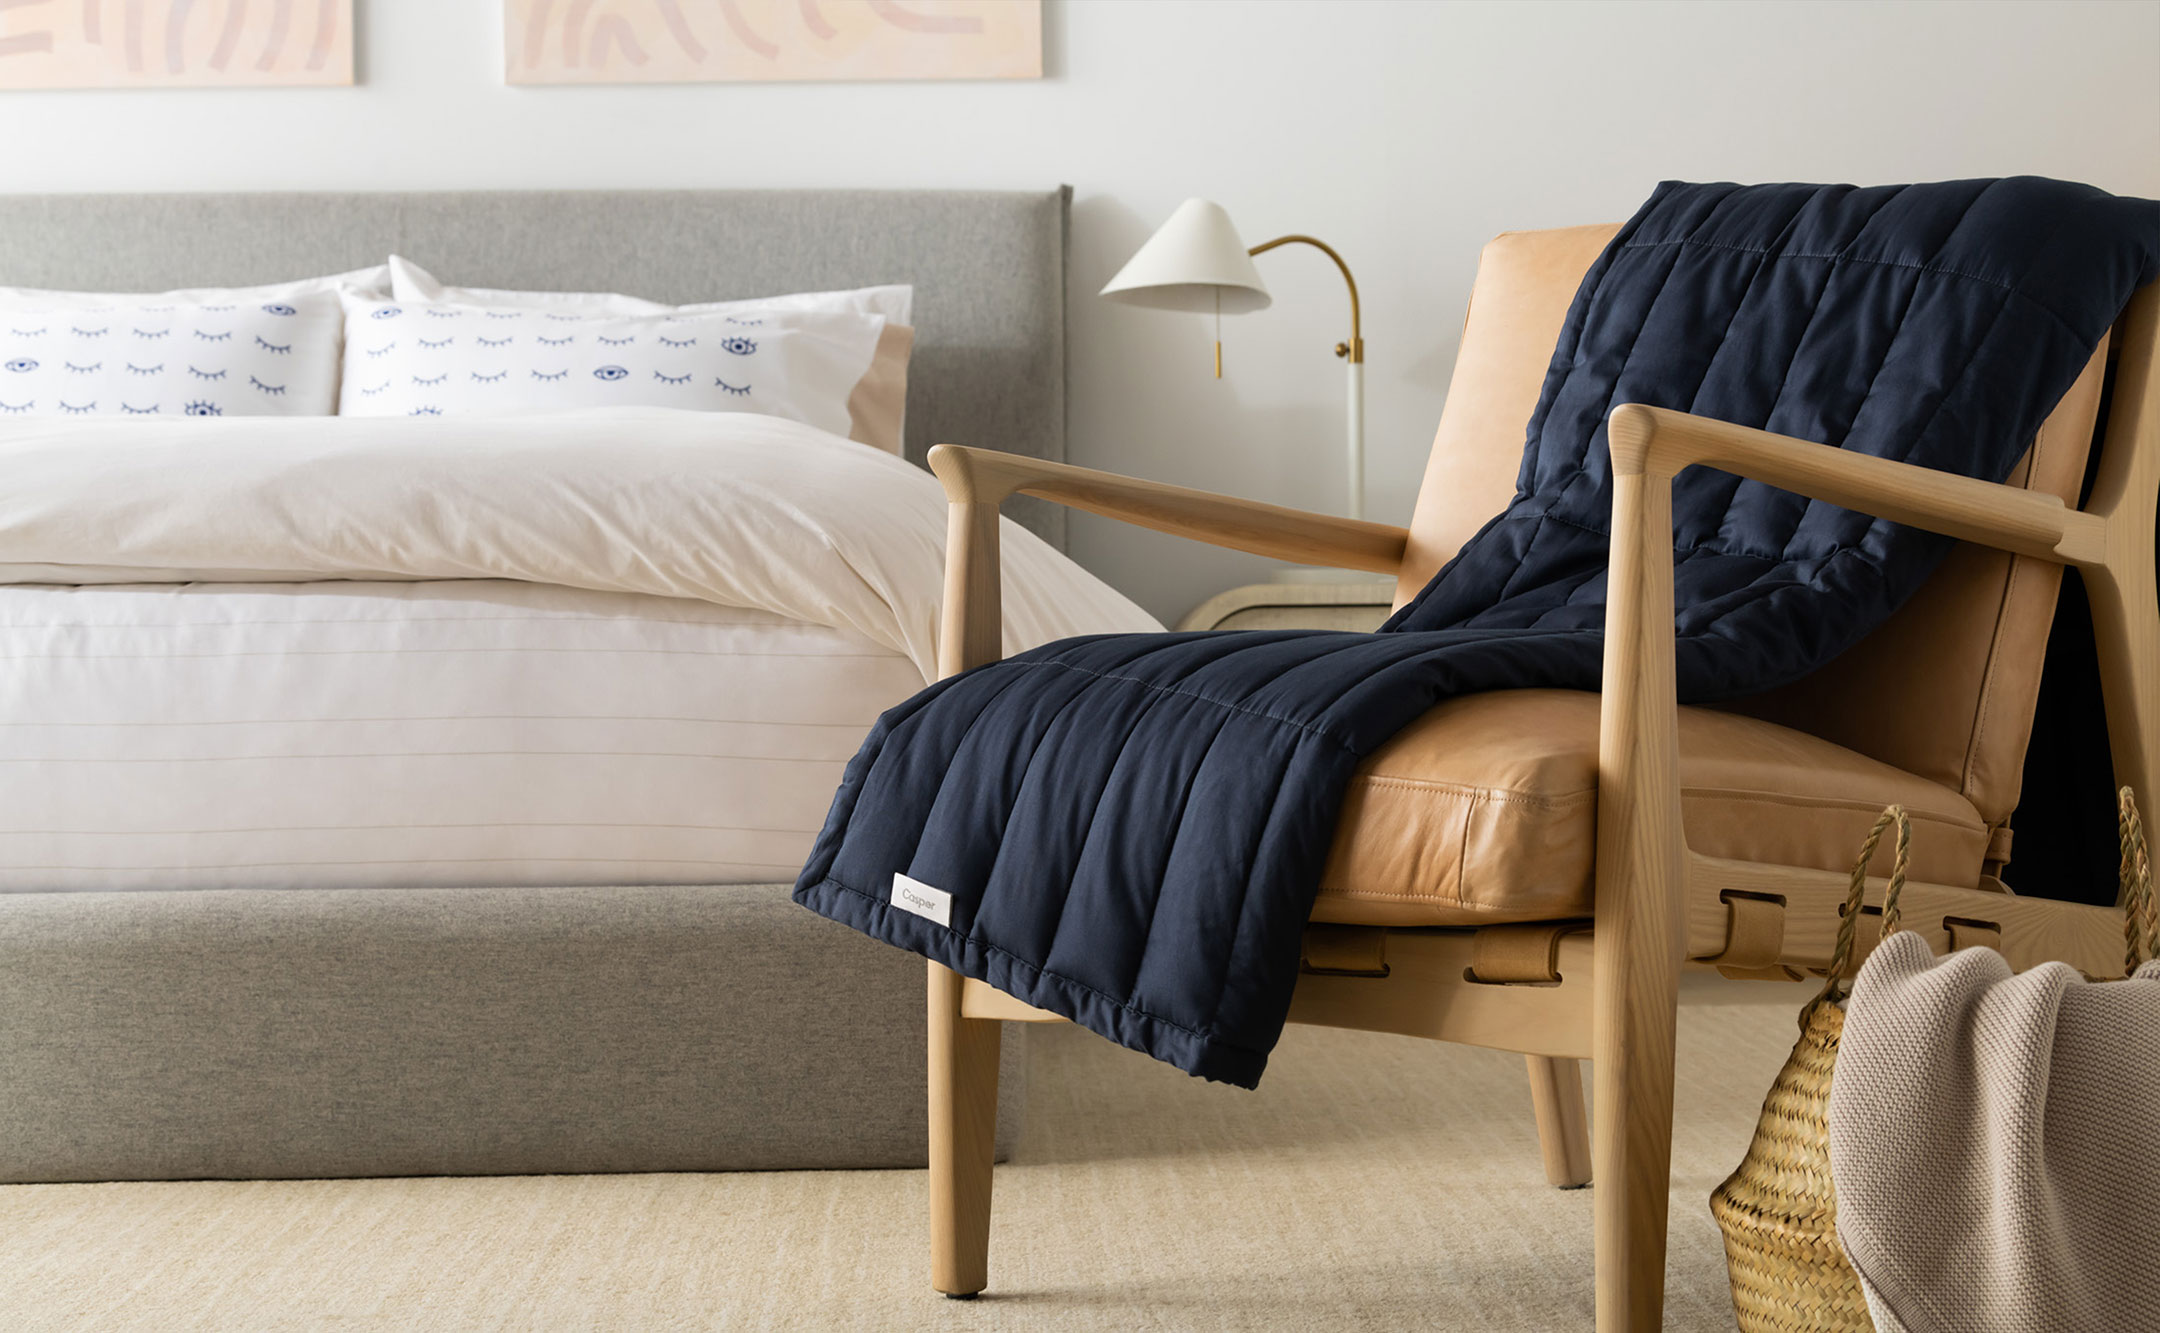 weighted blanket on a chair